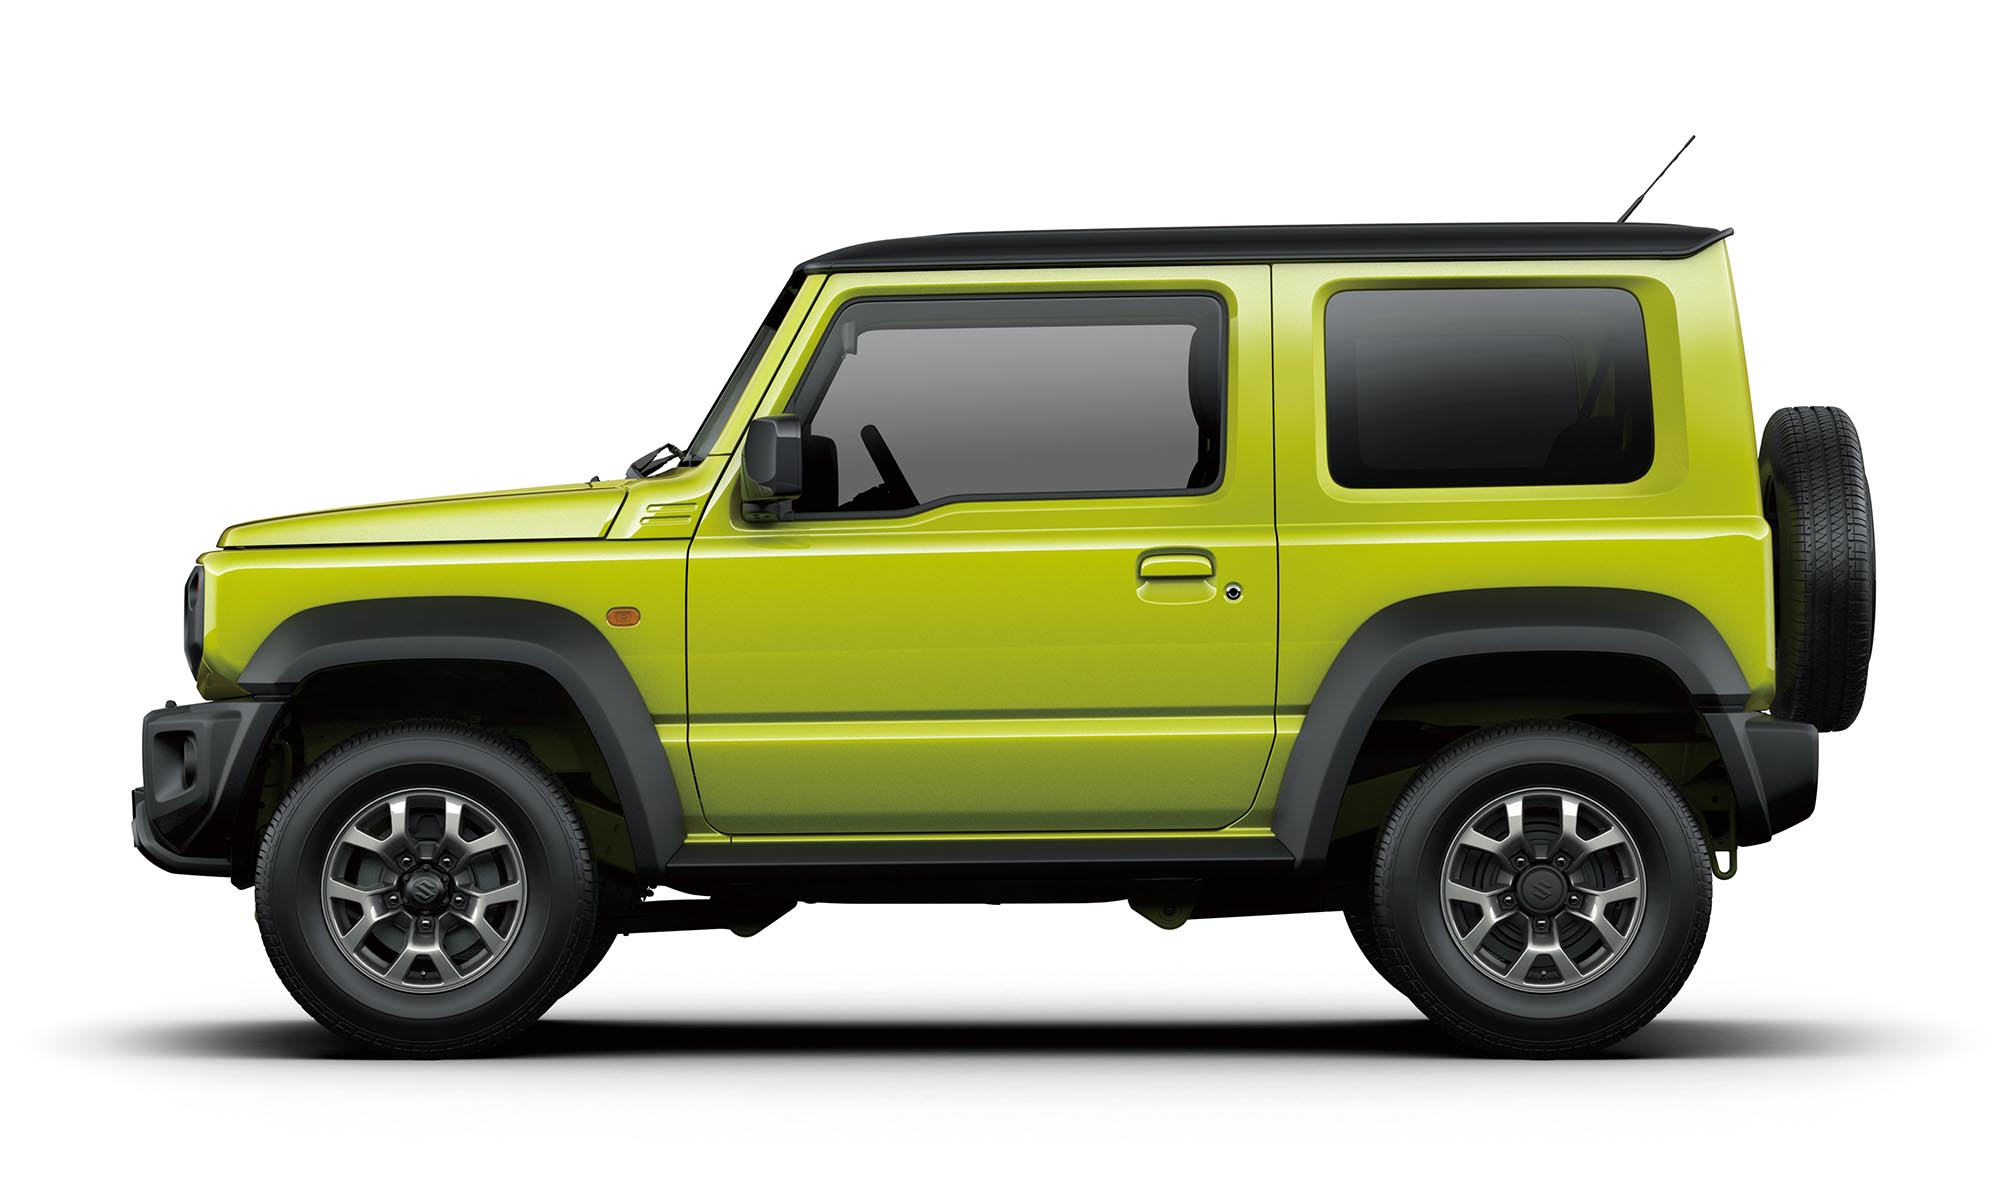 autoart to launch 1 18 scale suzuki jimny 2019 with full opening features xdiecast. Black Bedroom Furniture Sets. Home Design Ideas